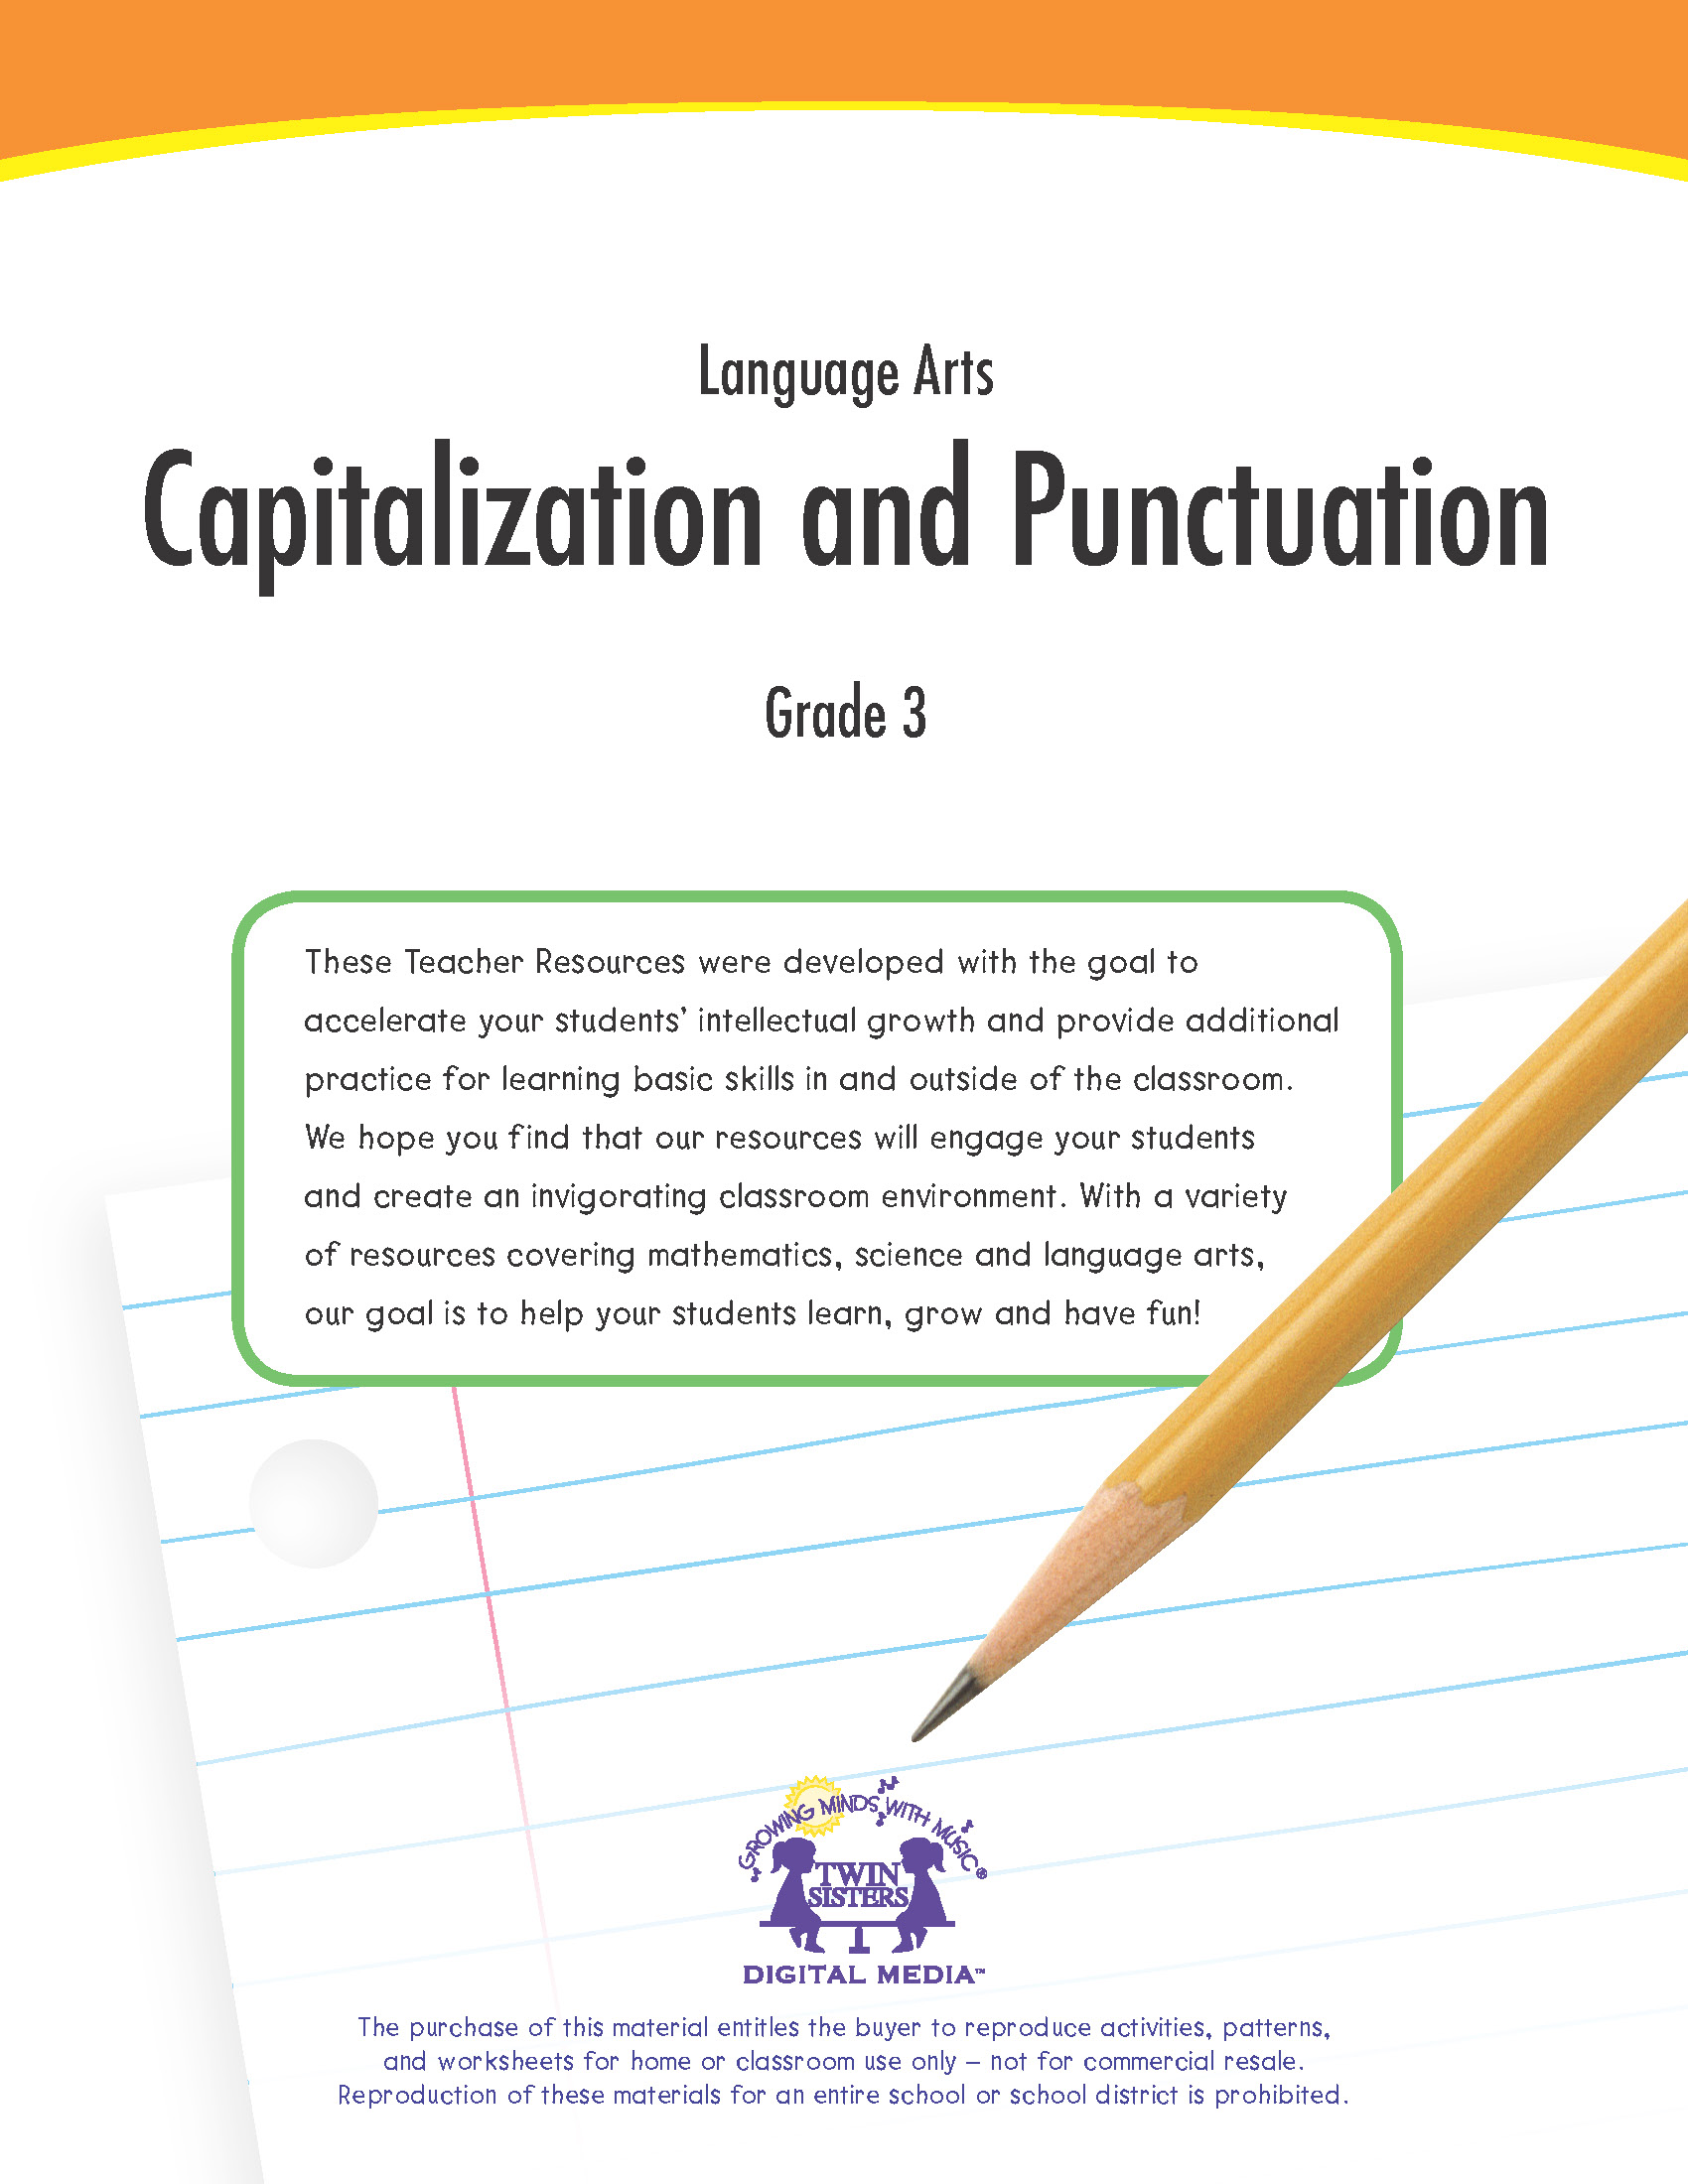 Language Arts Grade 3 Capitalization And Punctuation